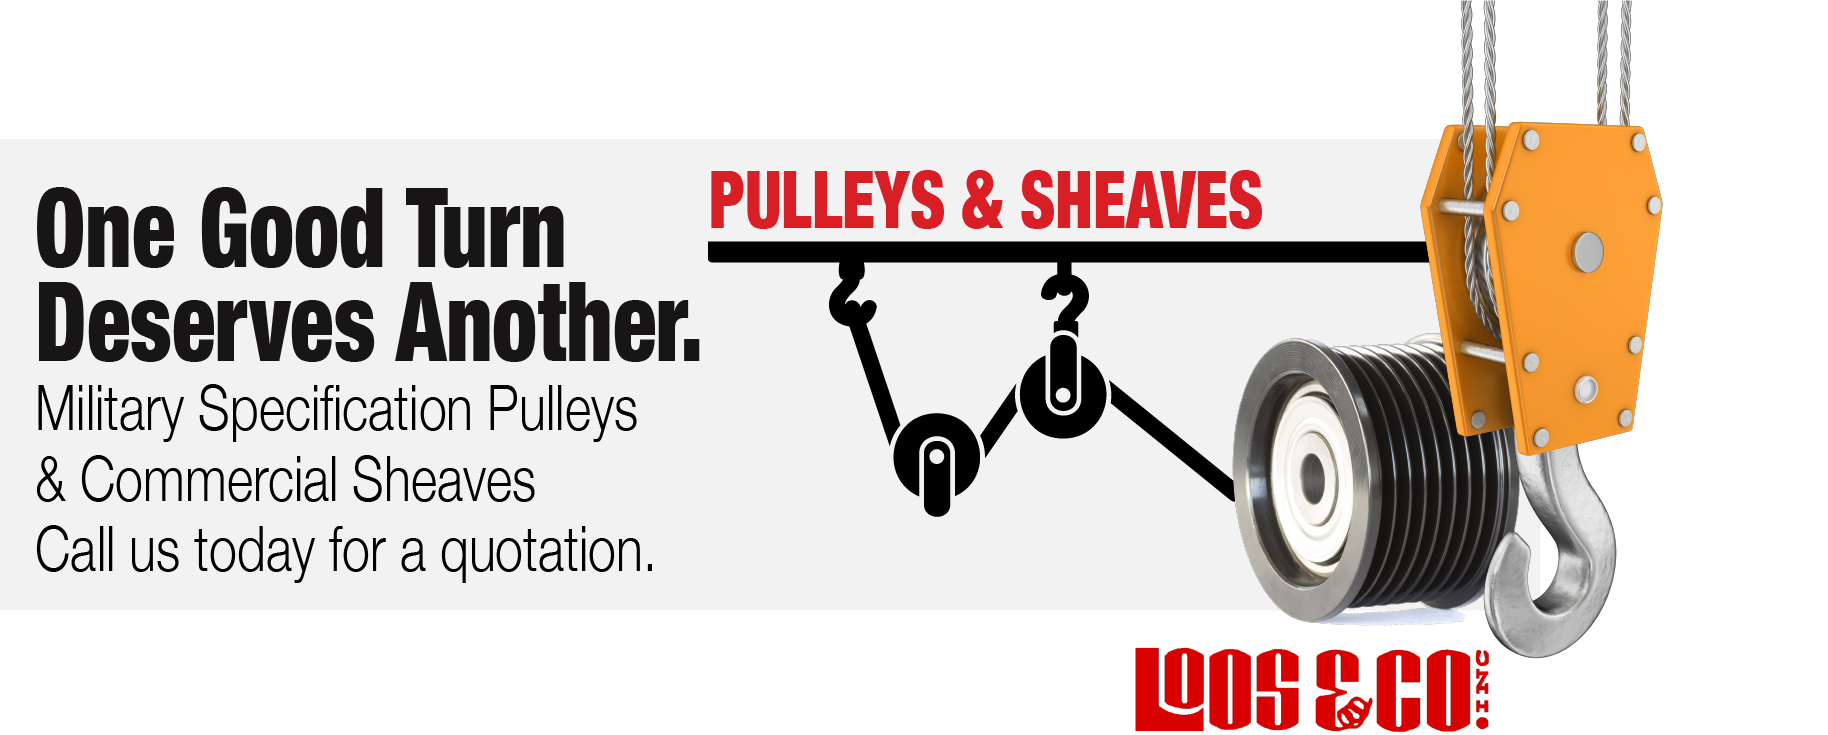 Loos and Company Pulleys & Sheaves